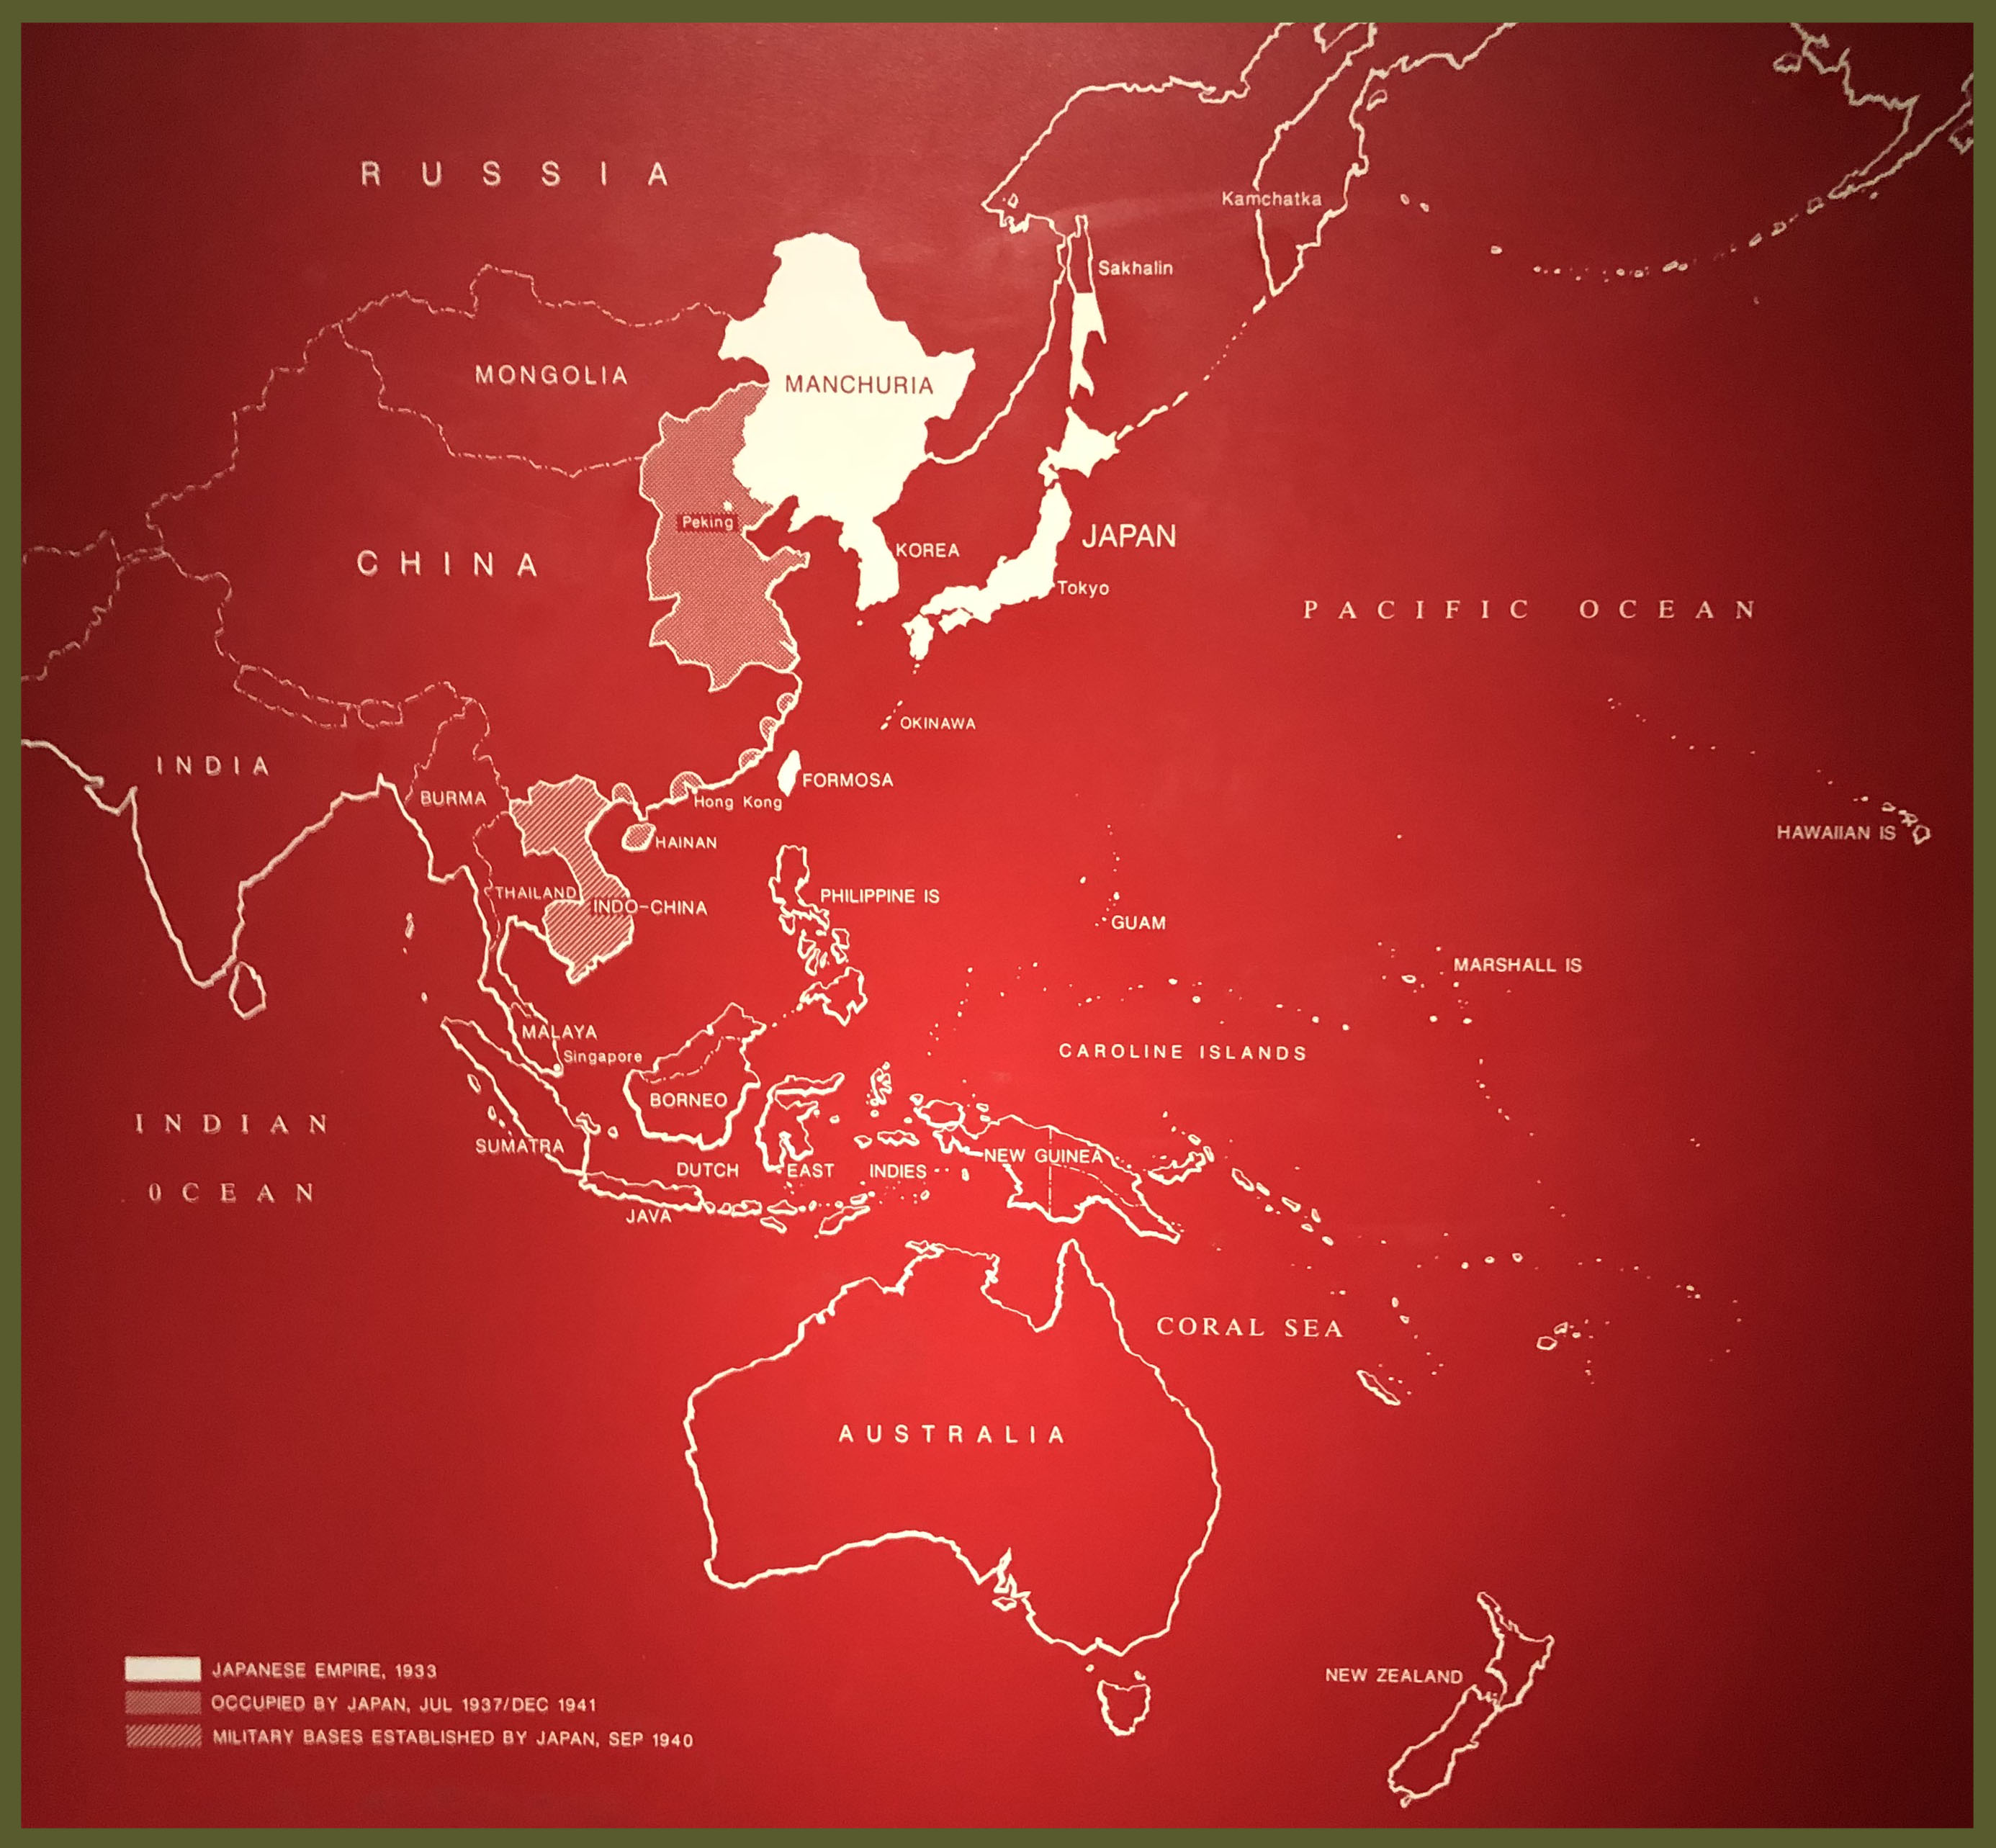 Map Greater East Asia Co-prosperity sphere